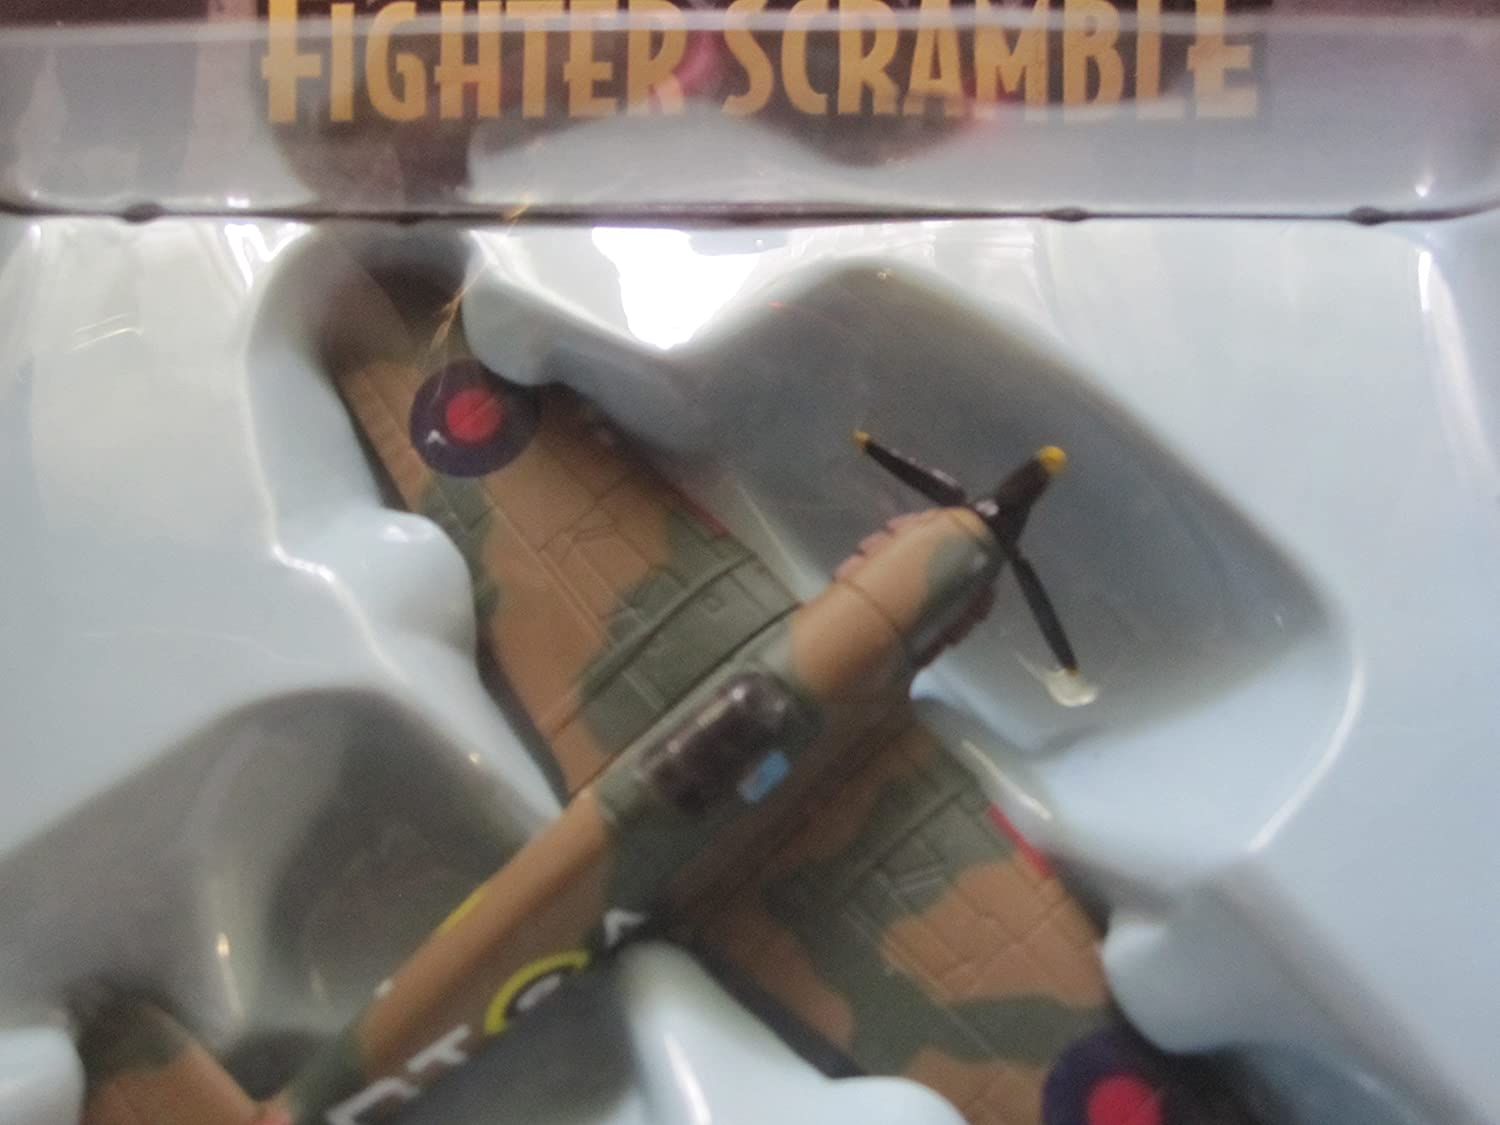 Hawker Hurricane Squadron Leader Stanford RAF British Fighter Plane by Corgi with Display Stand